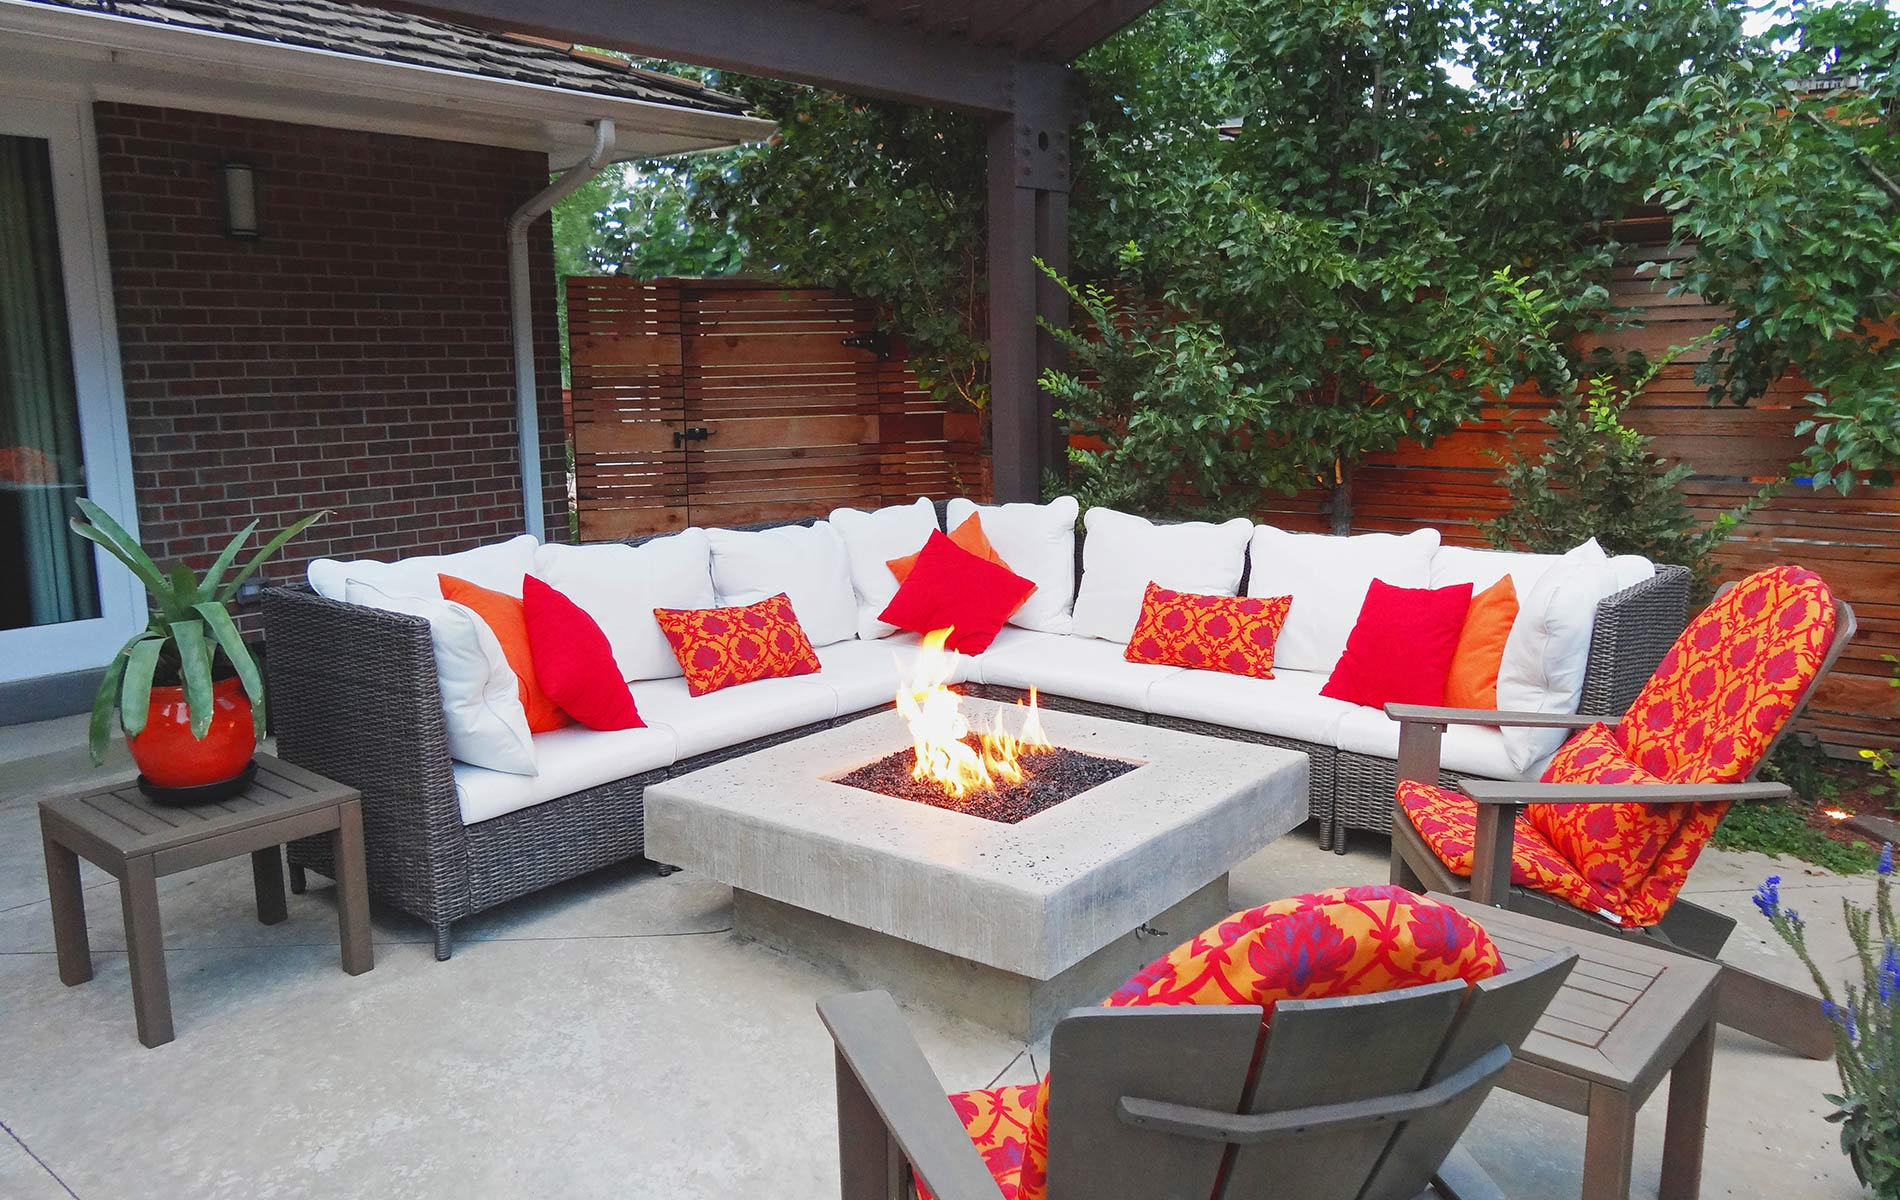 Sparkling glass topped firepit and sitting area in Award Winning Outdoor Room Mile High Landscaping in Denver